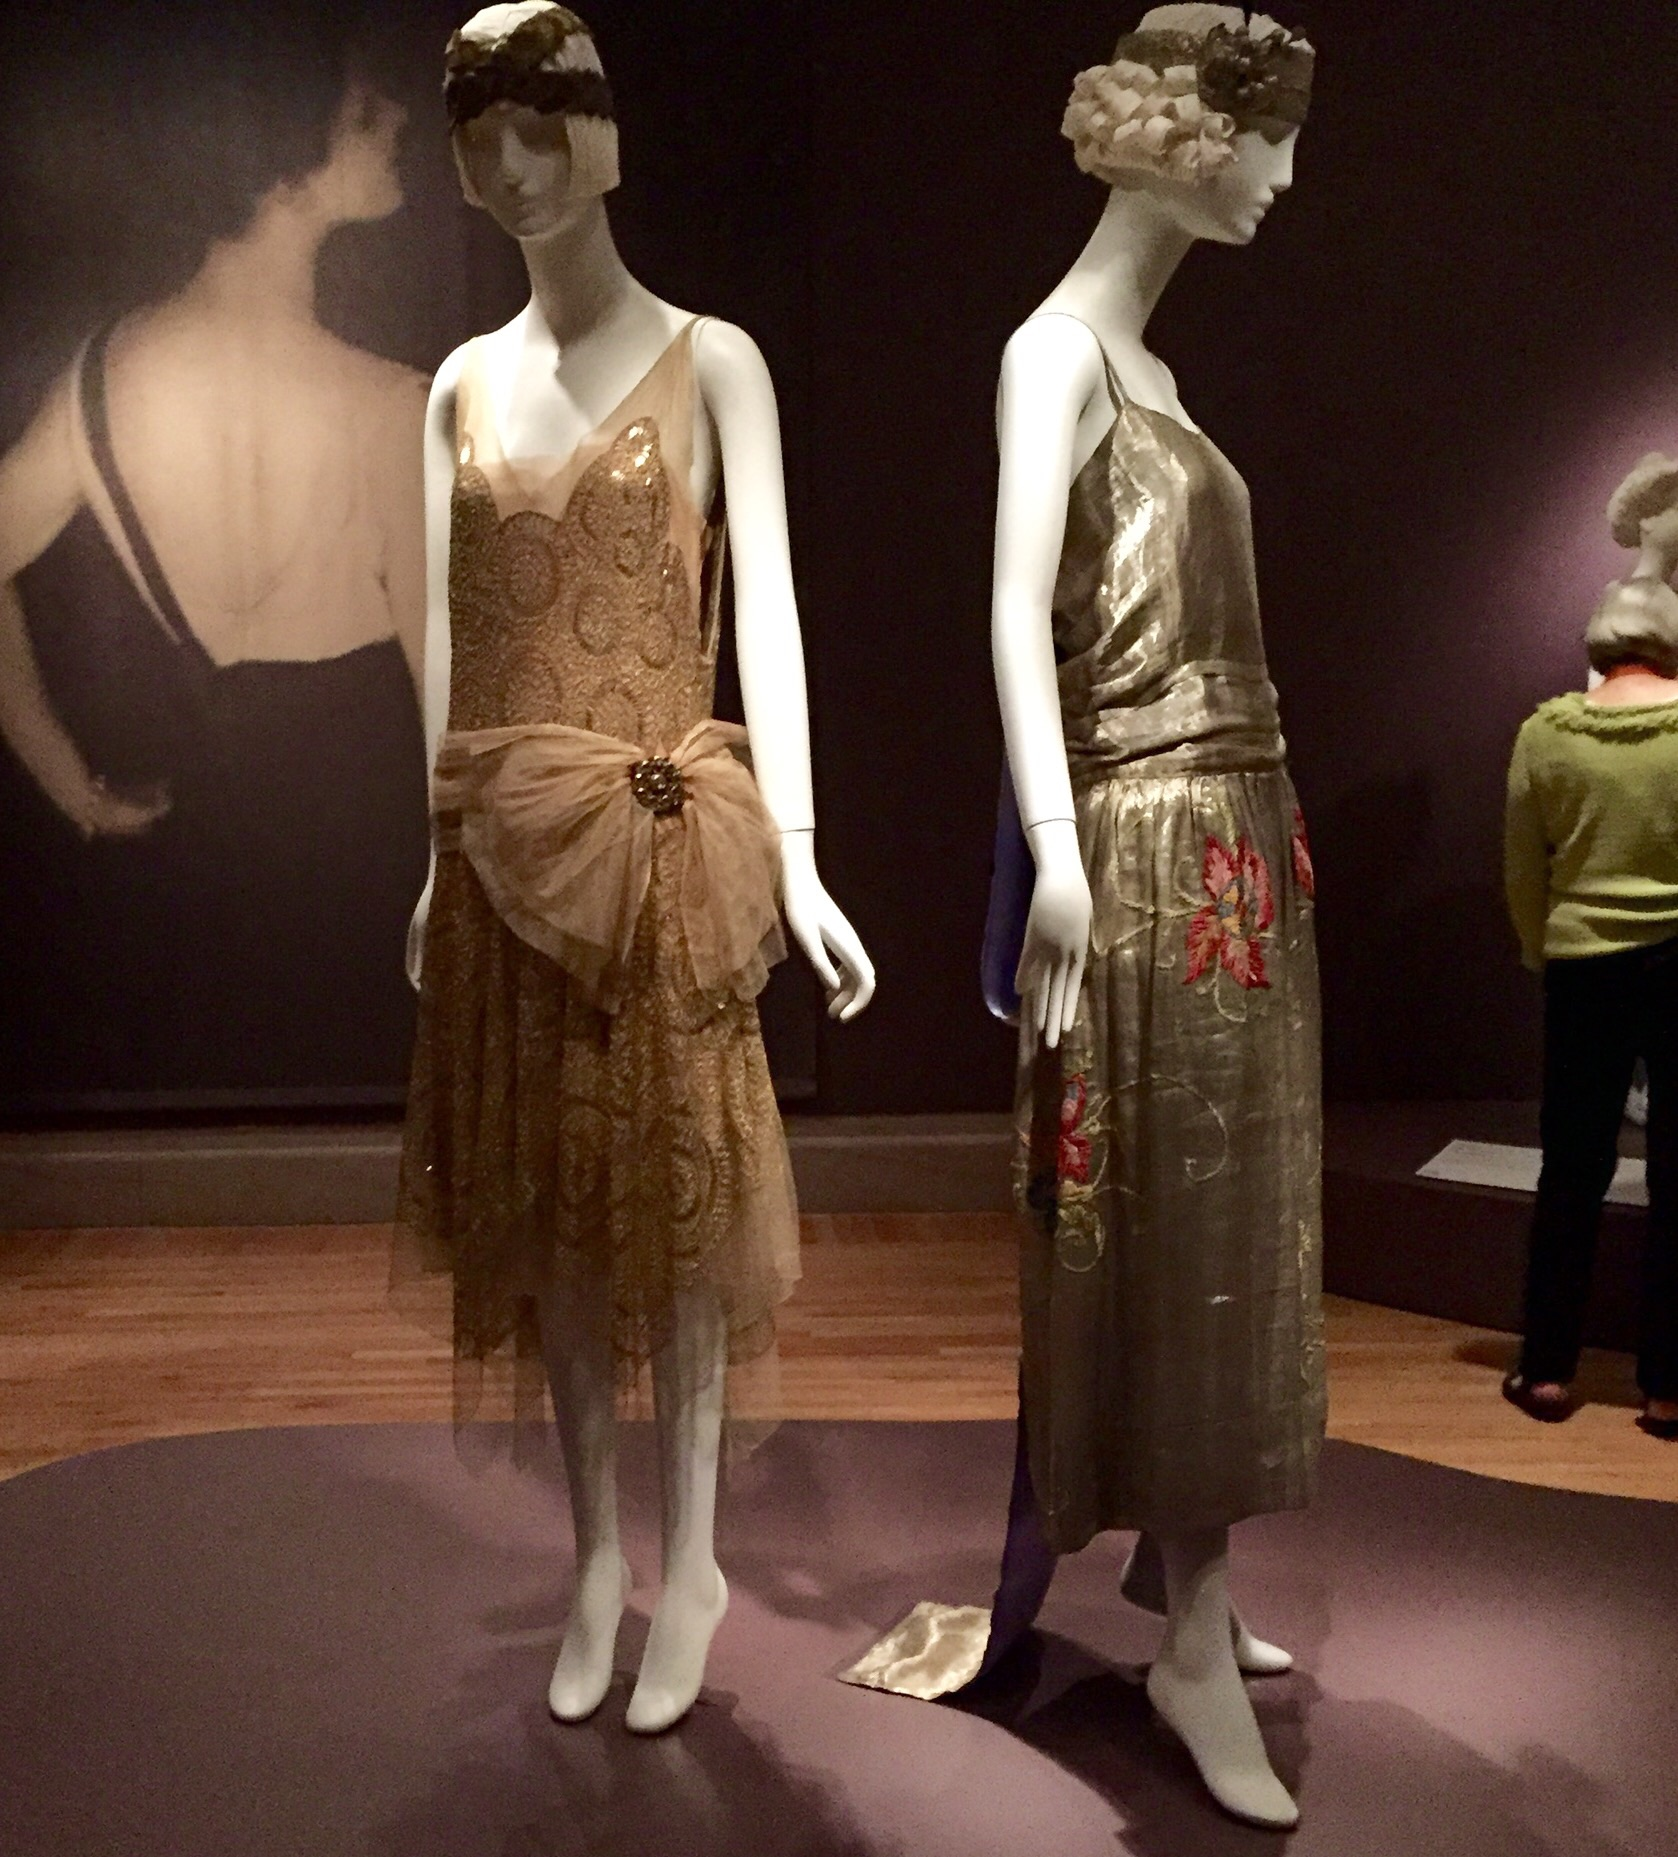 These dresses from the 1920's were the first pieces we saw when we walked in.